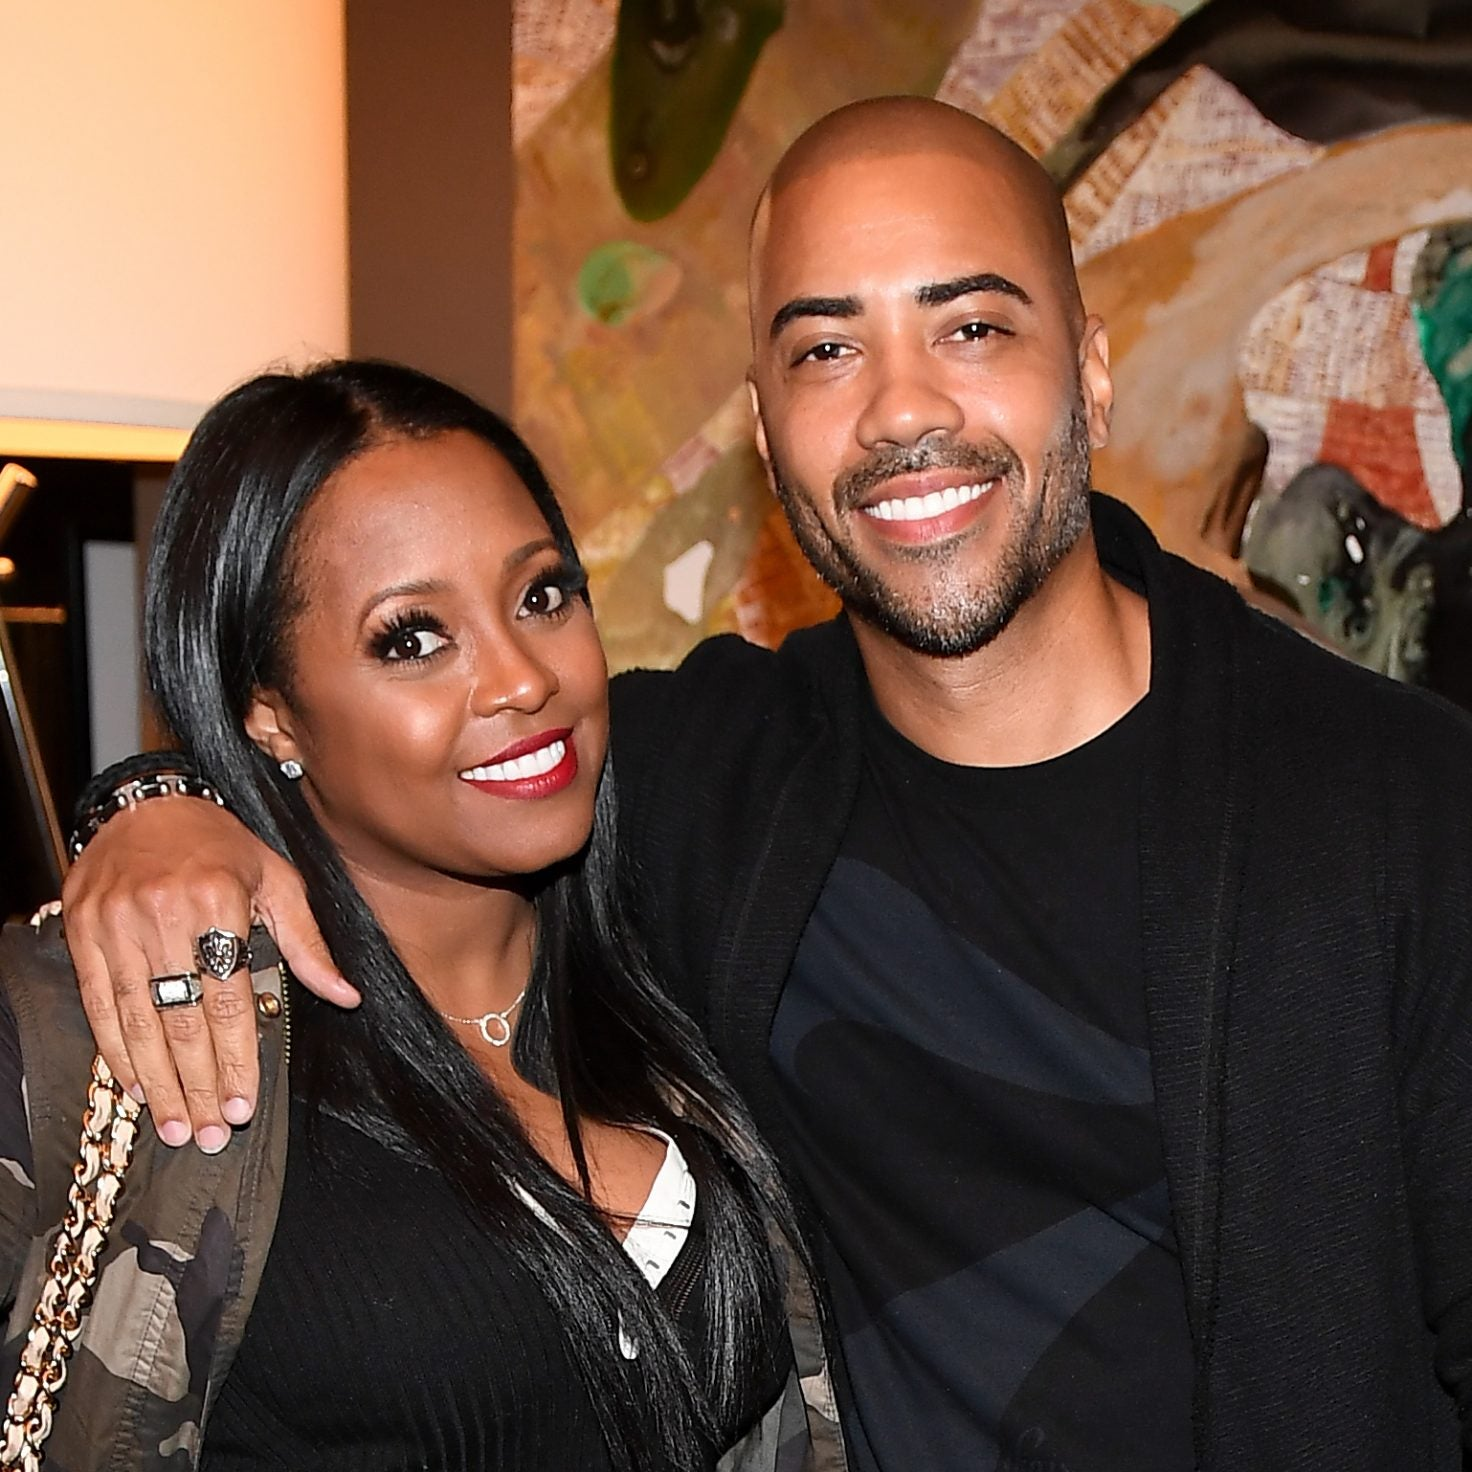 Actors Keshia Knight Pulliam and Brad James Made Memories On Their Boat Date